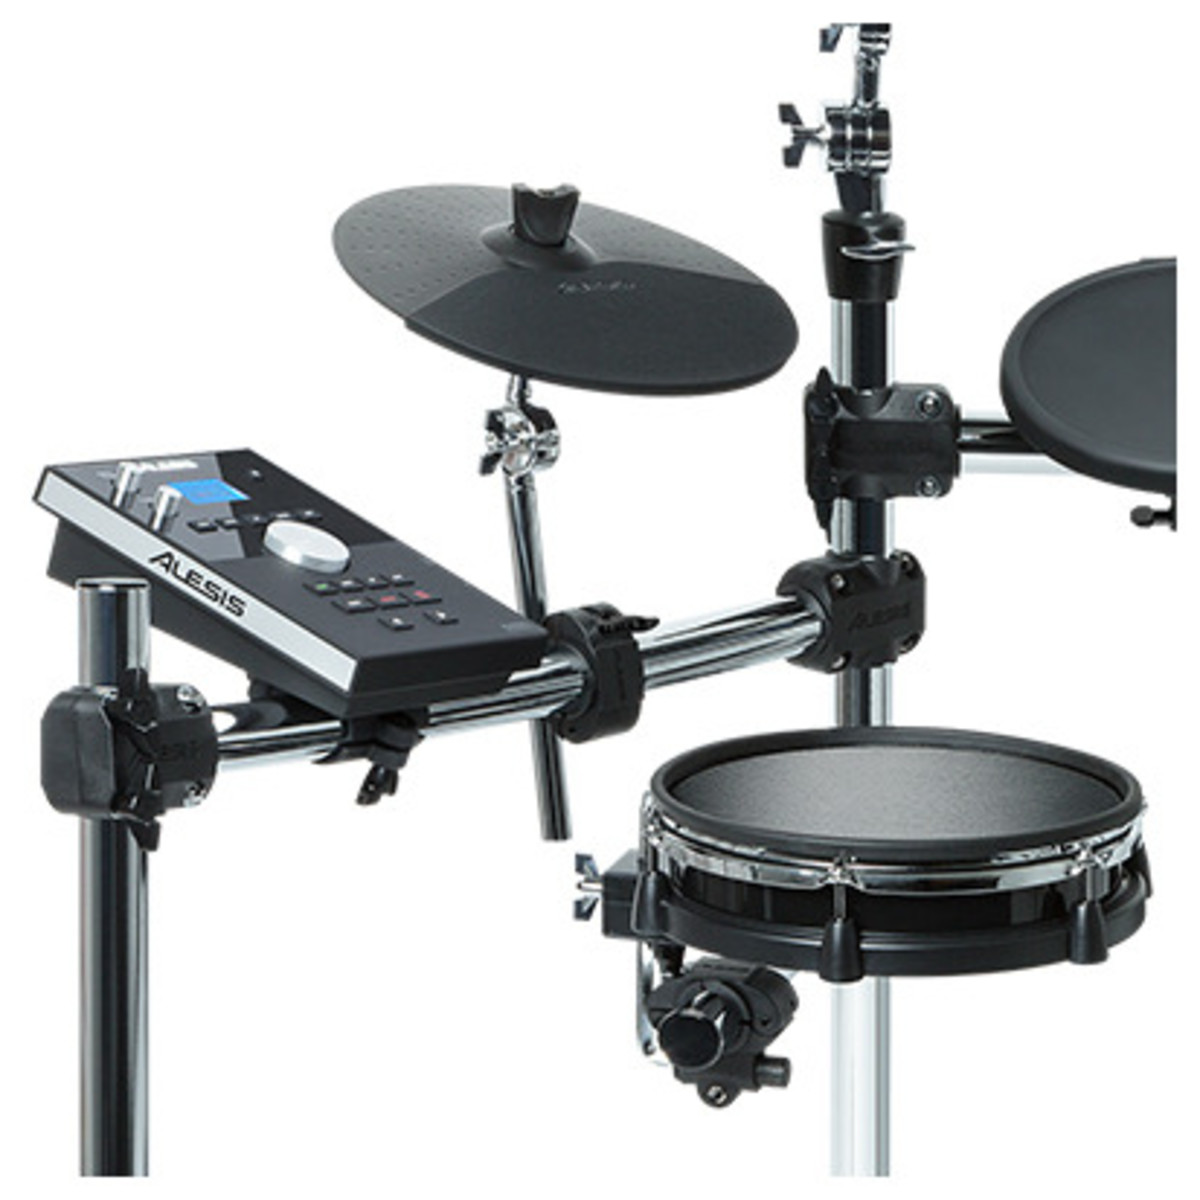 The Top 10 Best Drum Sets for the Money - The Wire Realm